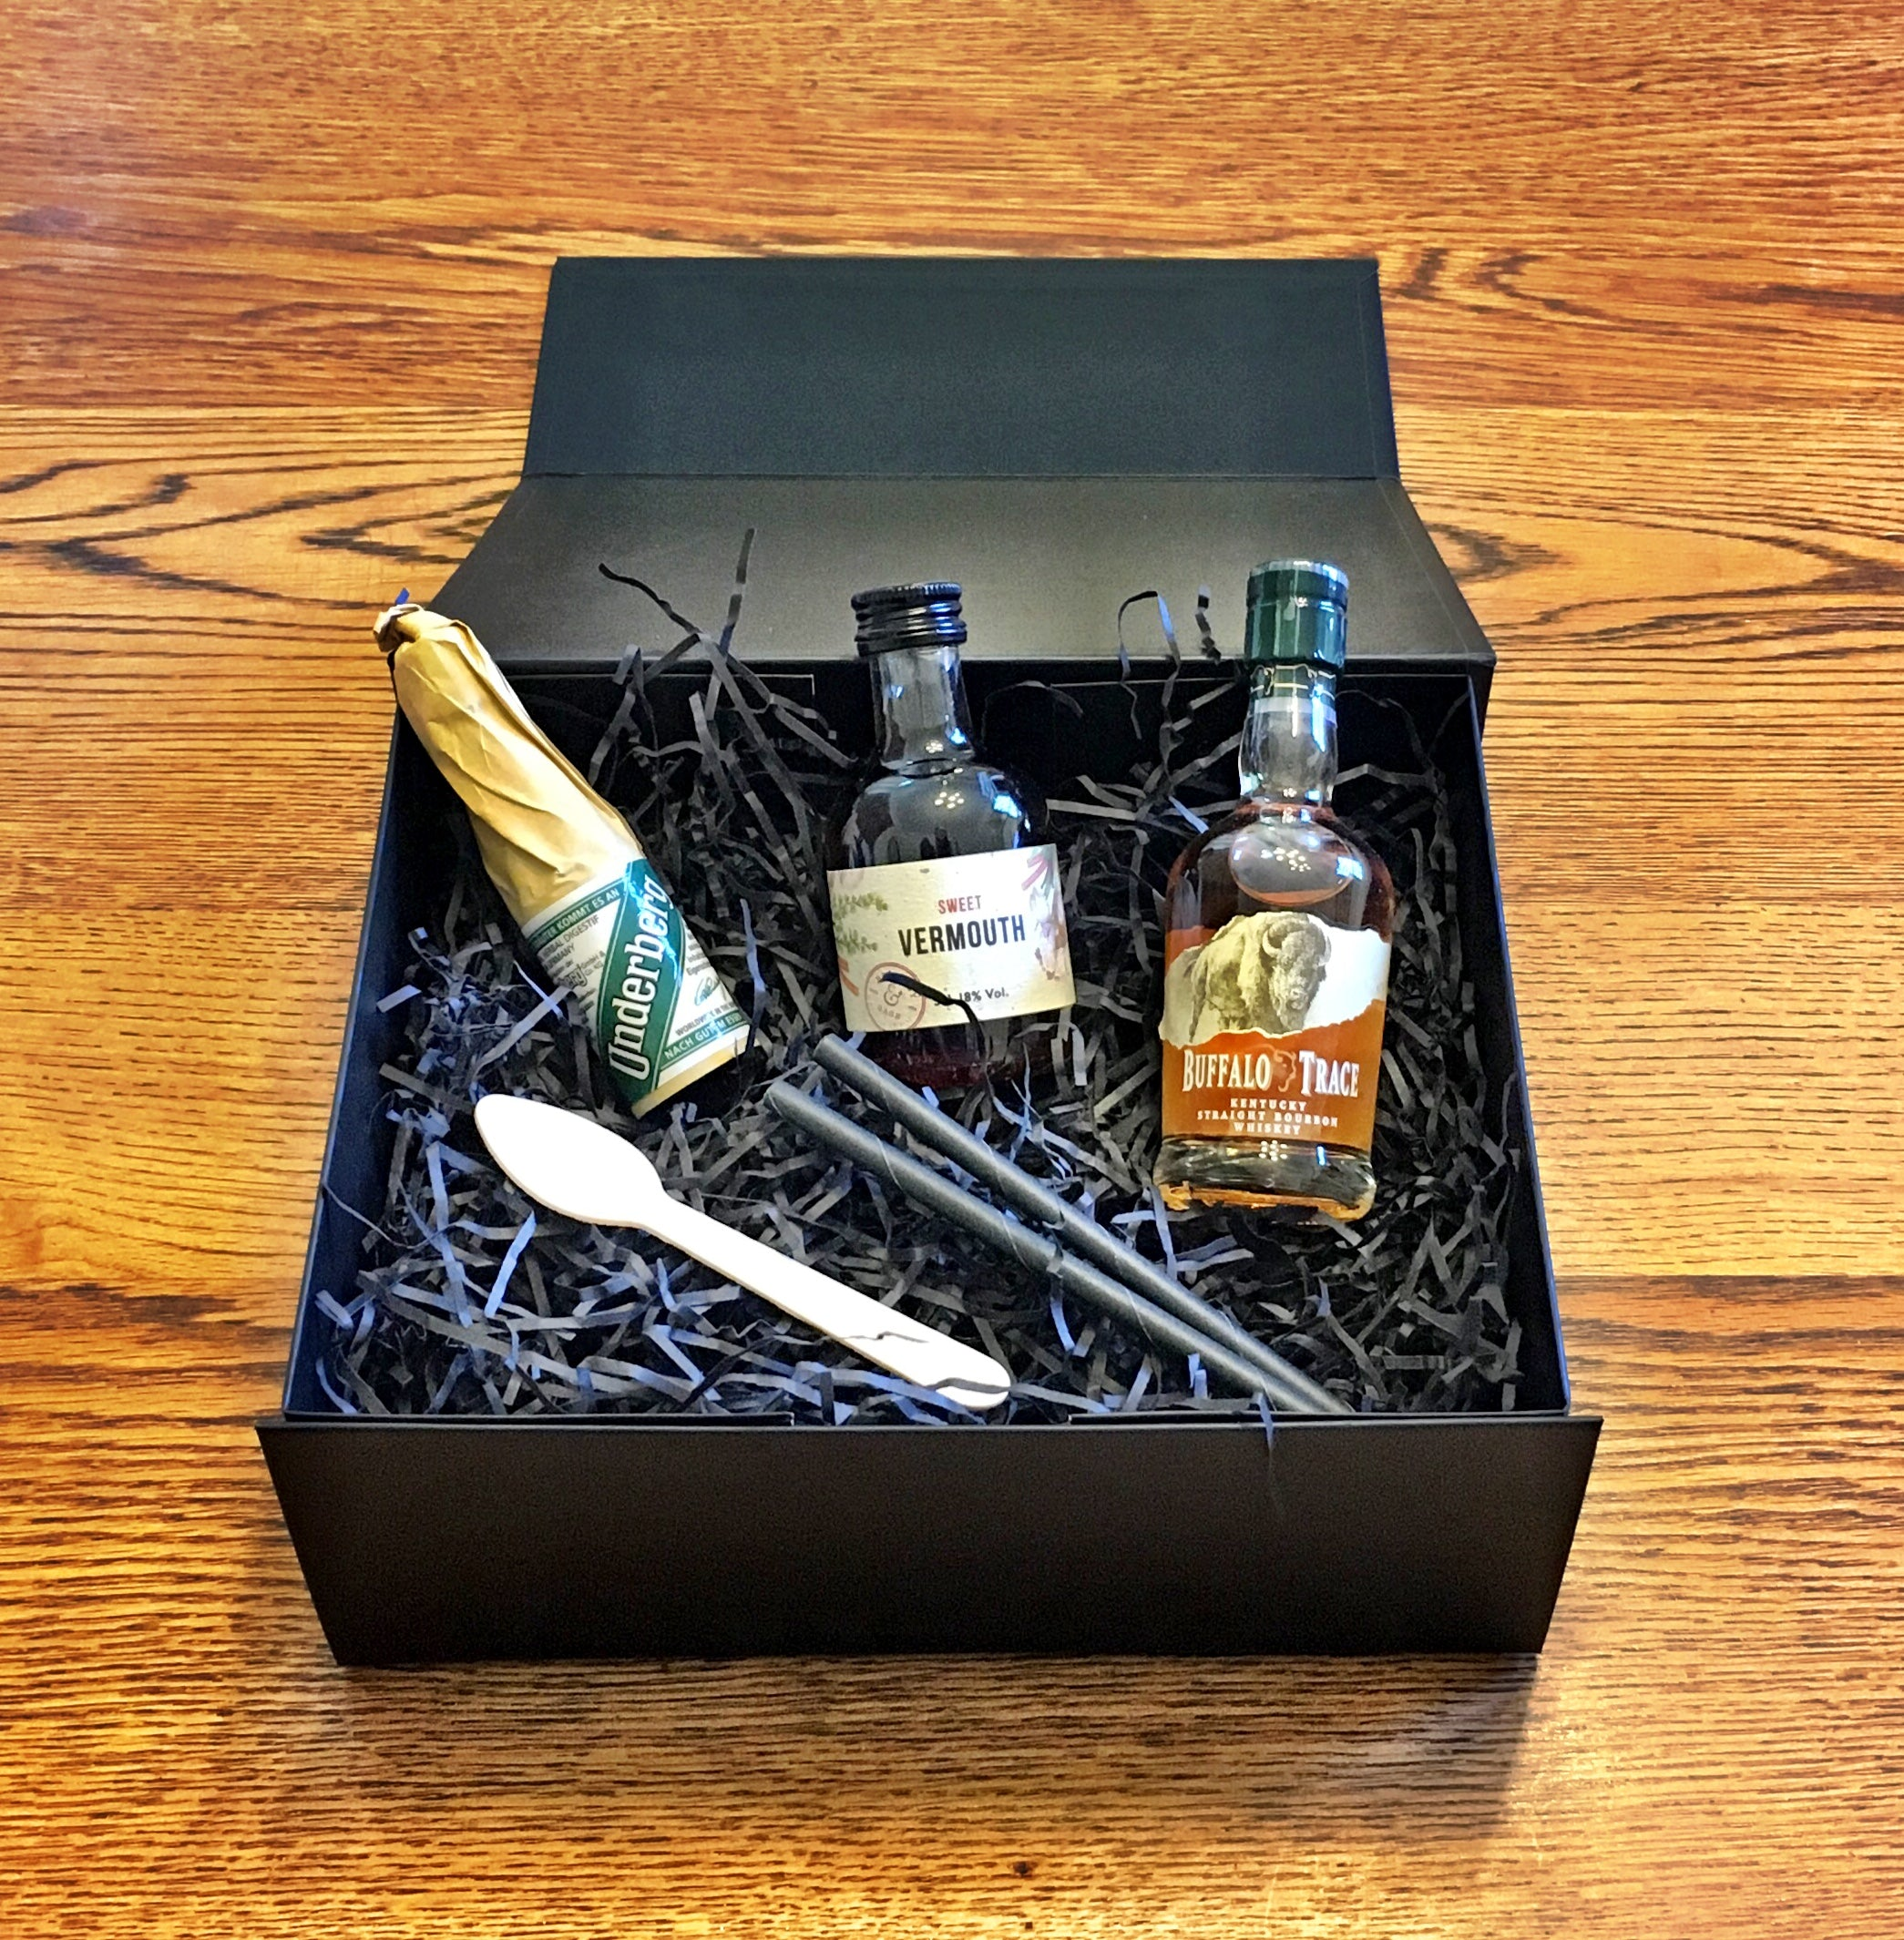 inside manhattan cocktail kit box